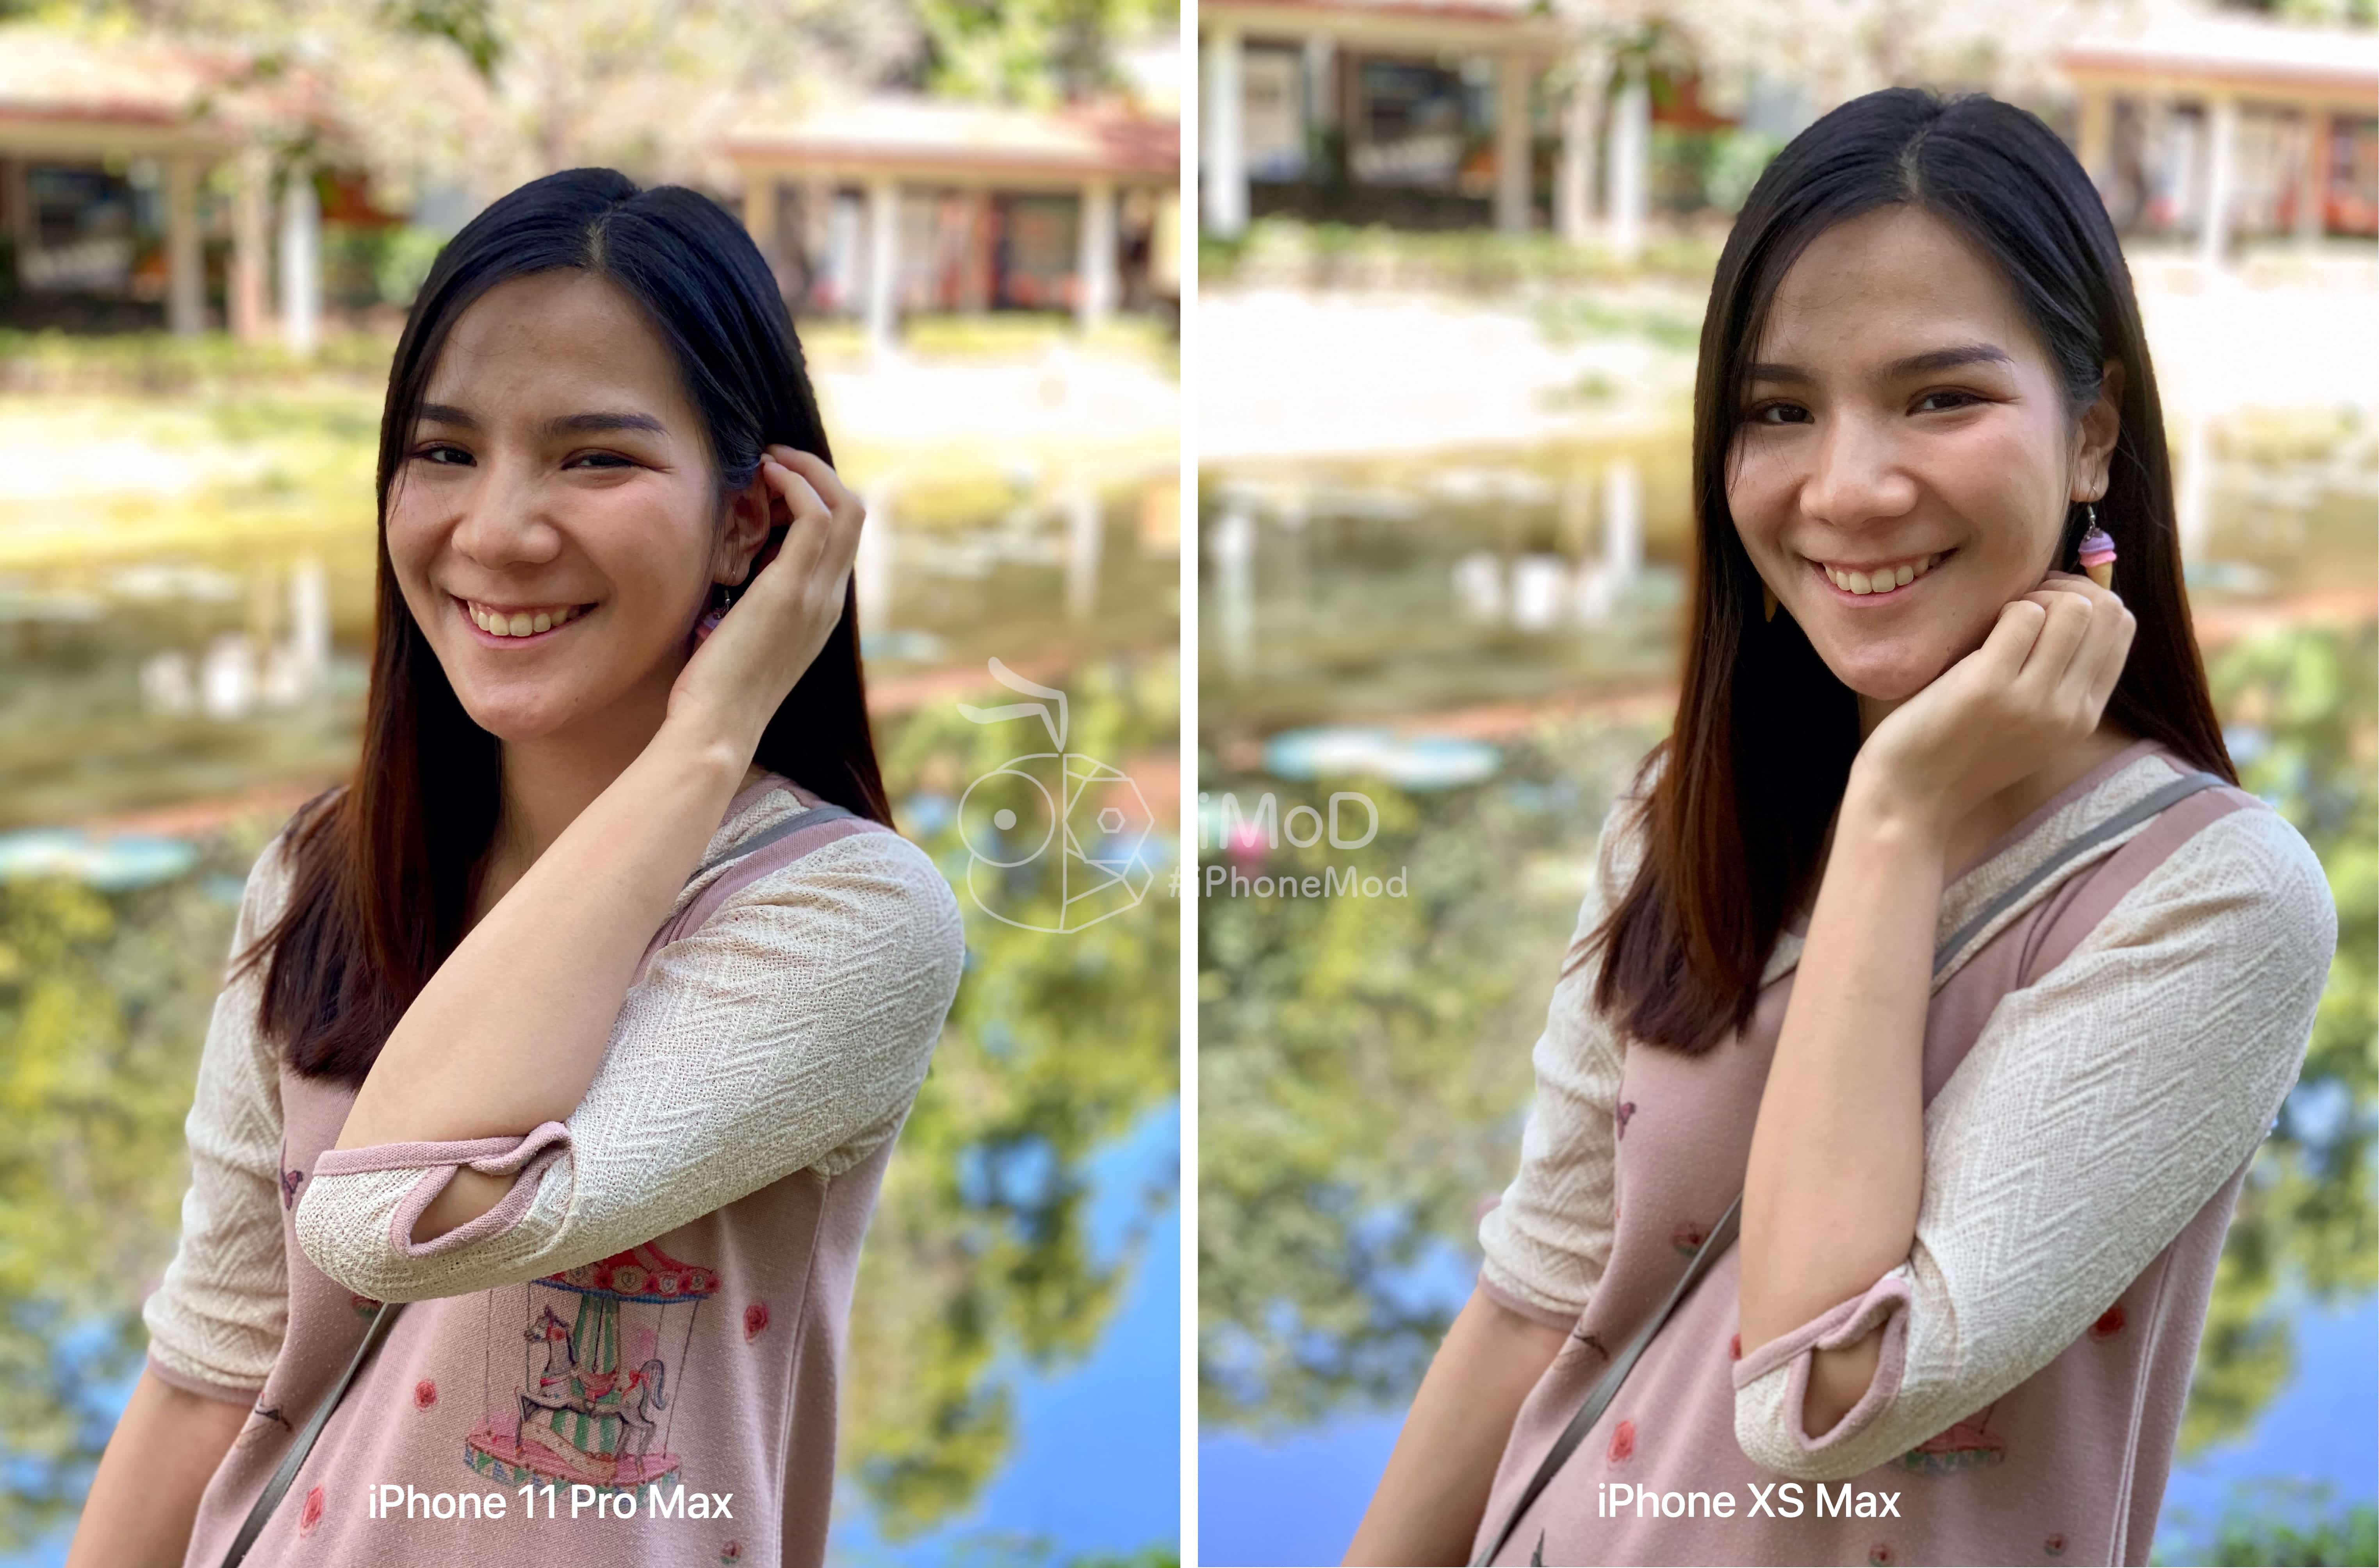 Iphone 11 Pro Max And Iphone Xs Max Portrait Compare Img 2